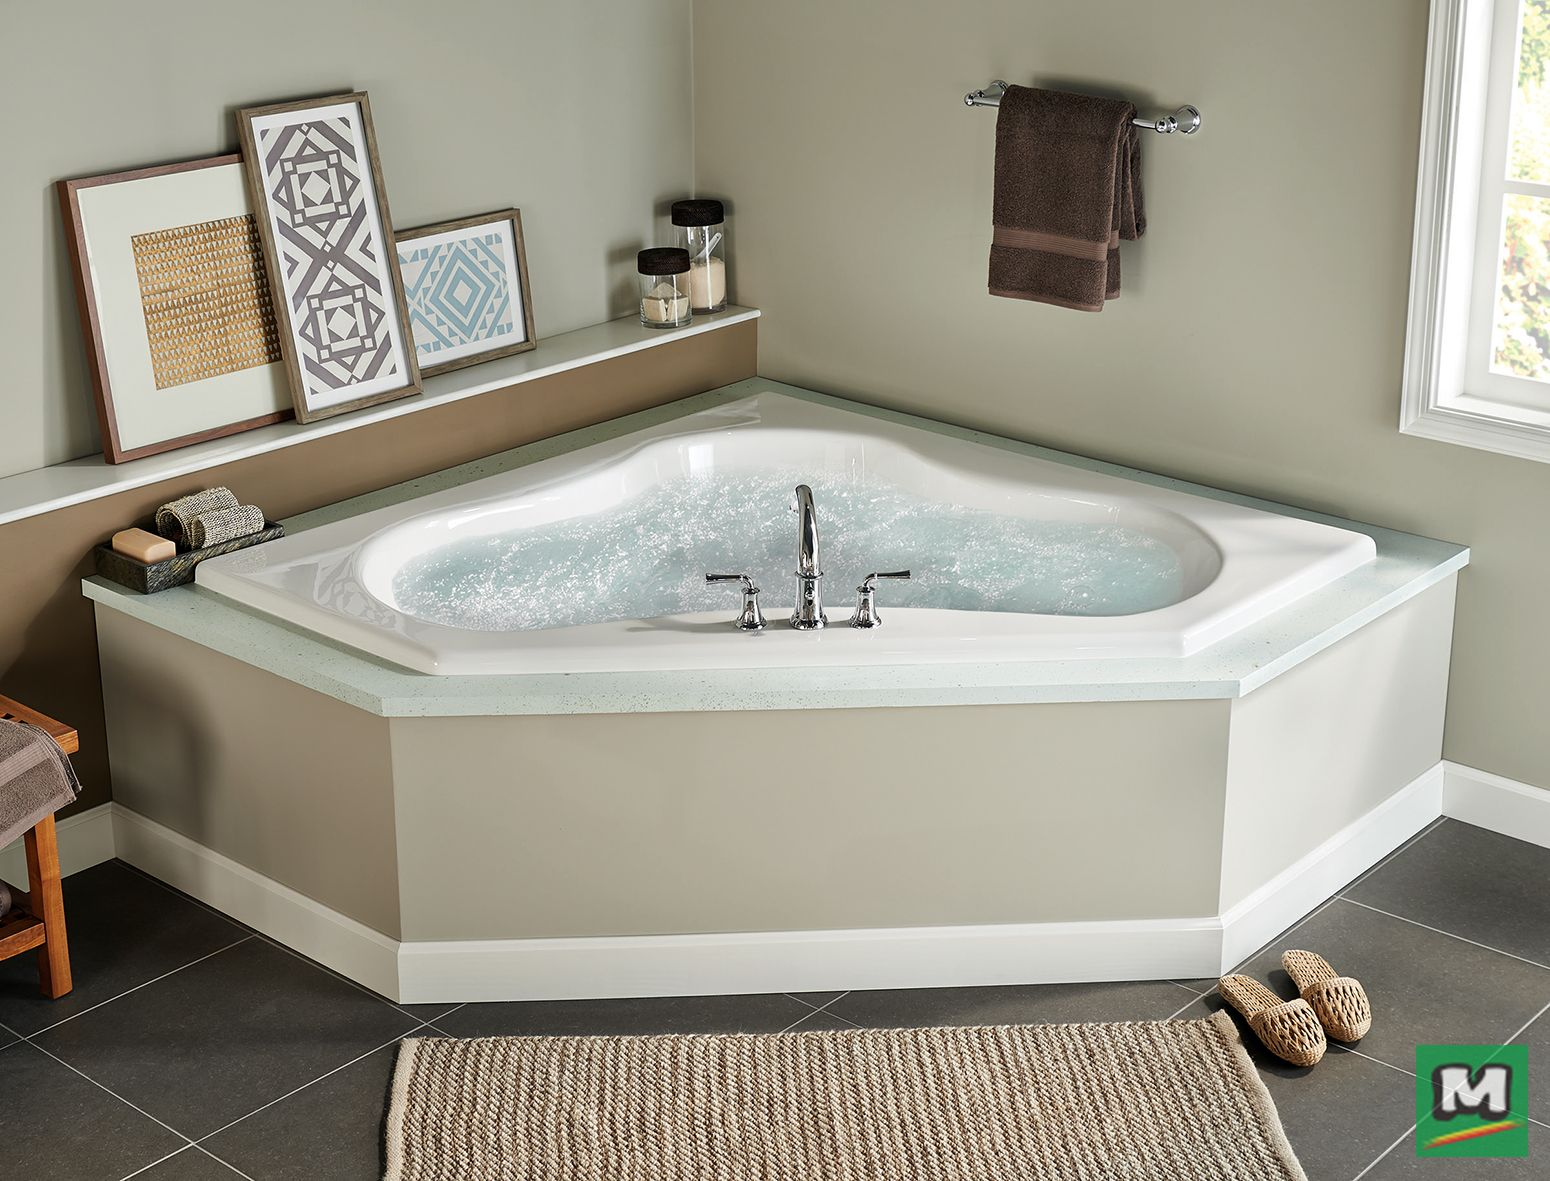 The Eljer Gemini Acrylic Whirlpool Is Perfect For A Corner Bathroom Layout It Features Three Unique Seating Posit Bathroom Layout Whirlpool Tub Bathtub Shower